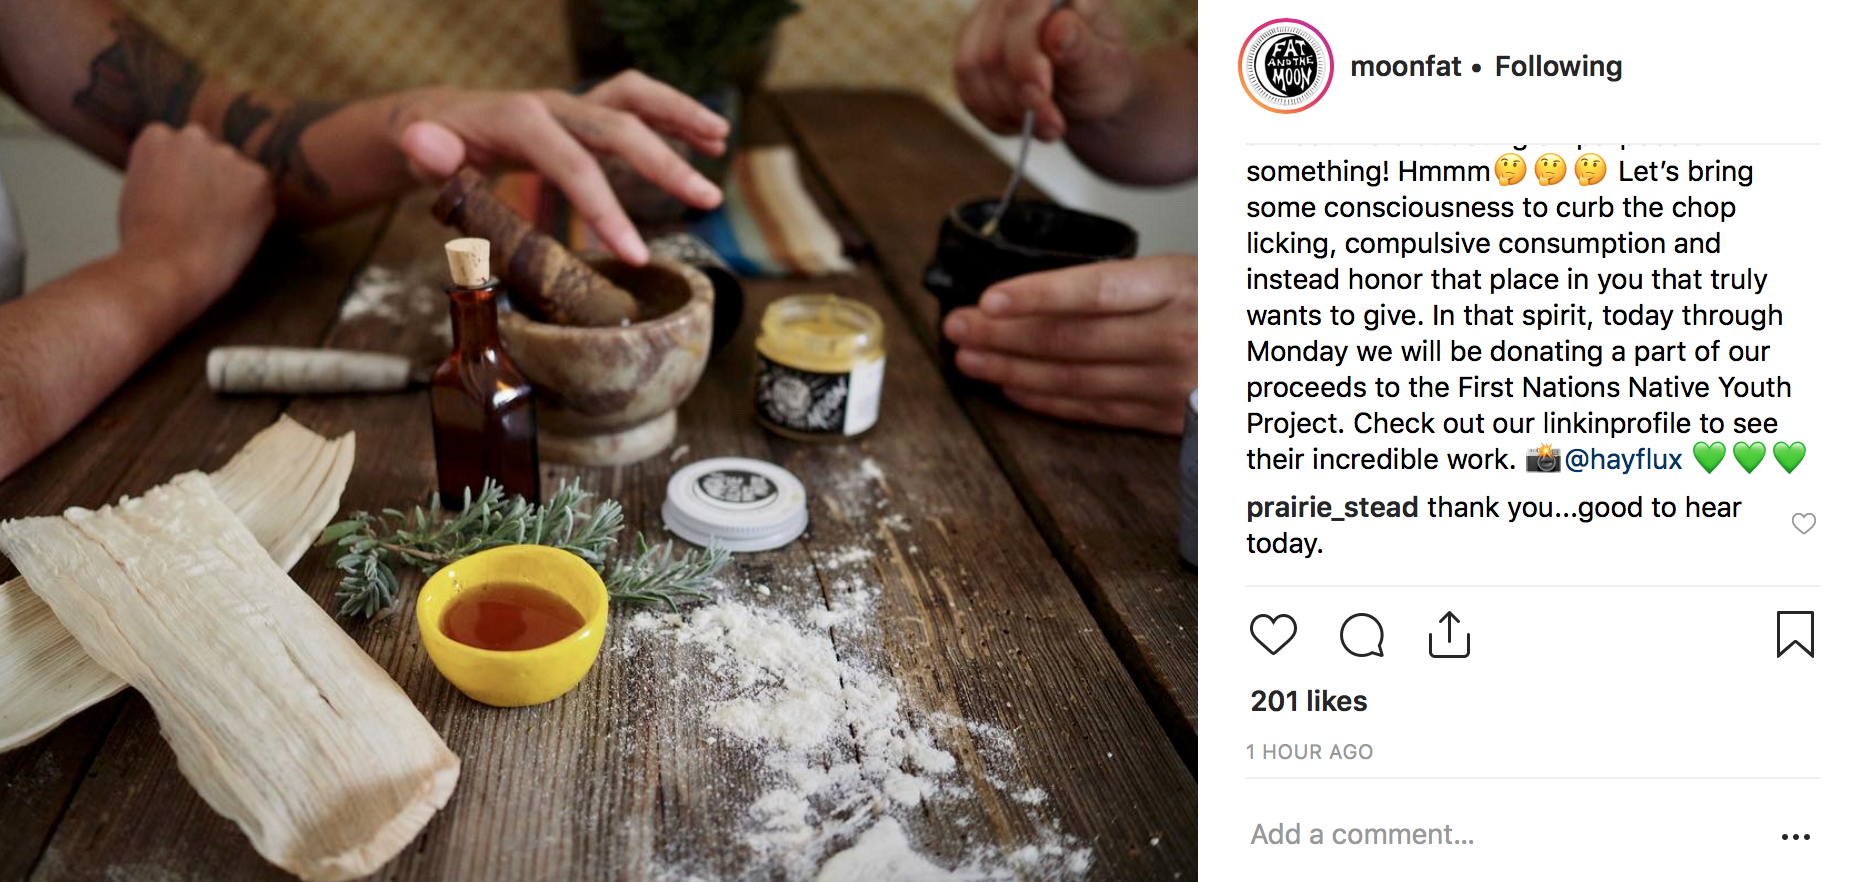 Fat and the Moon's take on BFCM: conscious consumption. No sale, just charitable giving (if only they specified the %). Posted on Instagram 11/22/18.